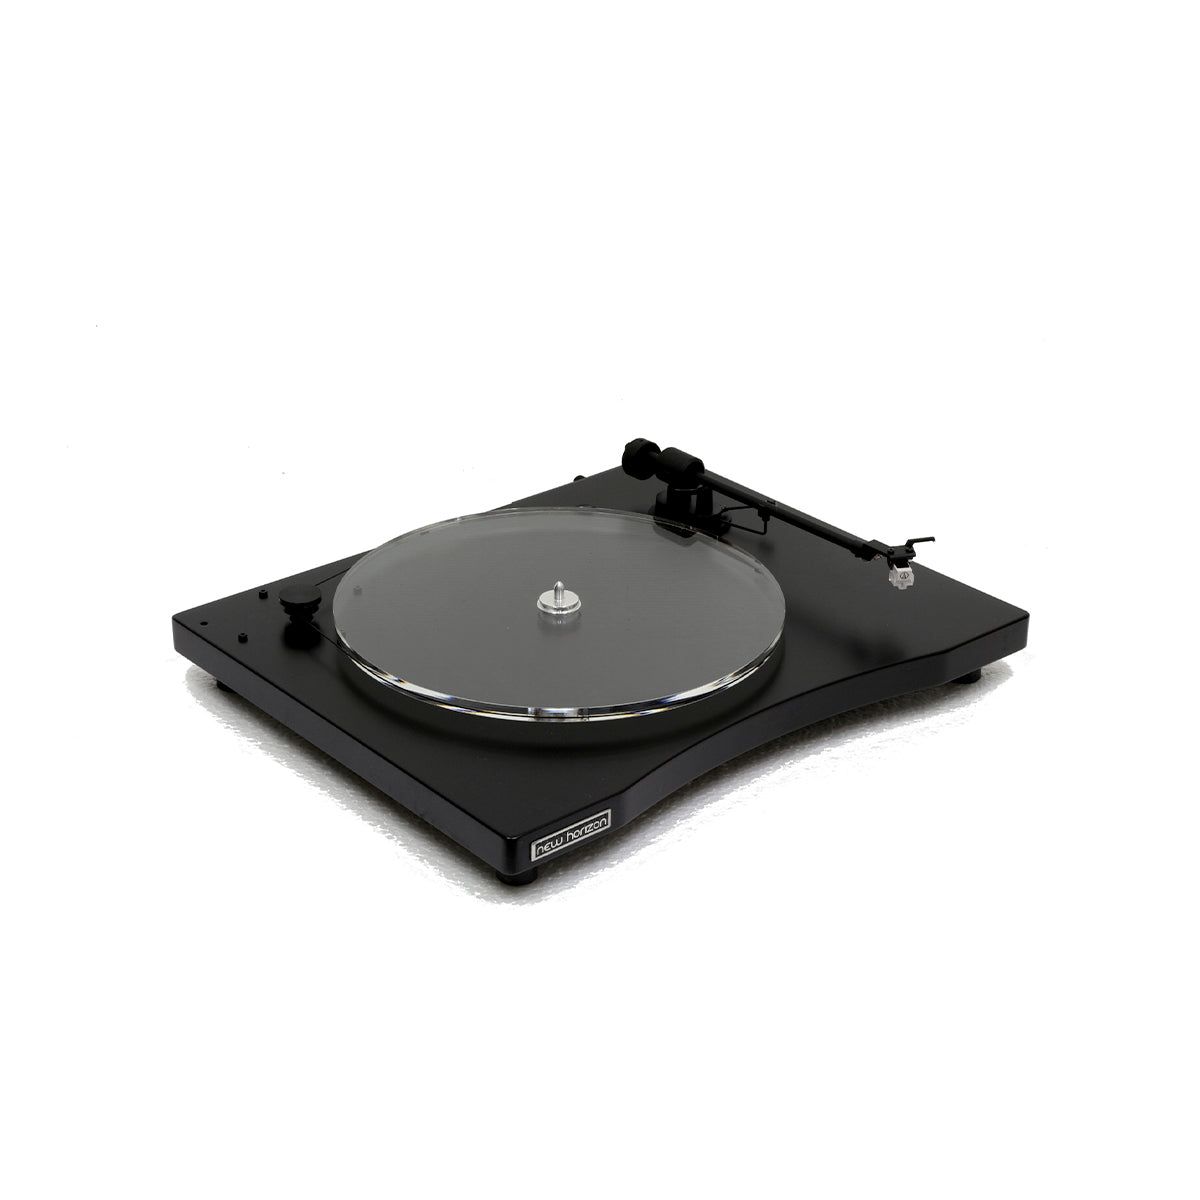 New Horizon Premium Belt Drive Turntable GD 1 with cover and cartridge